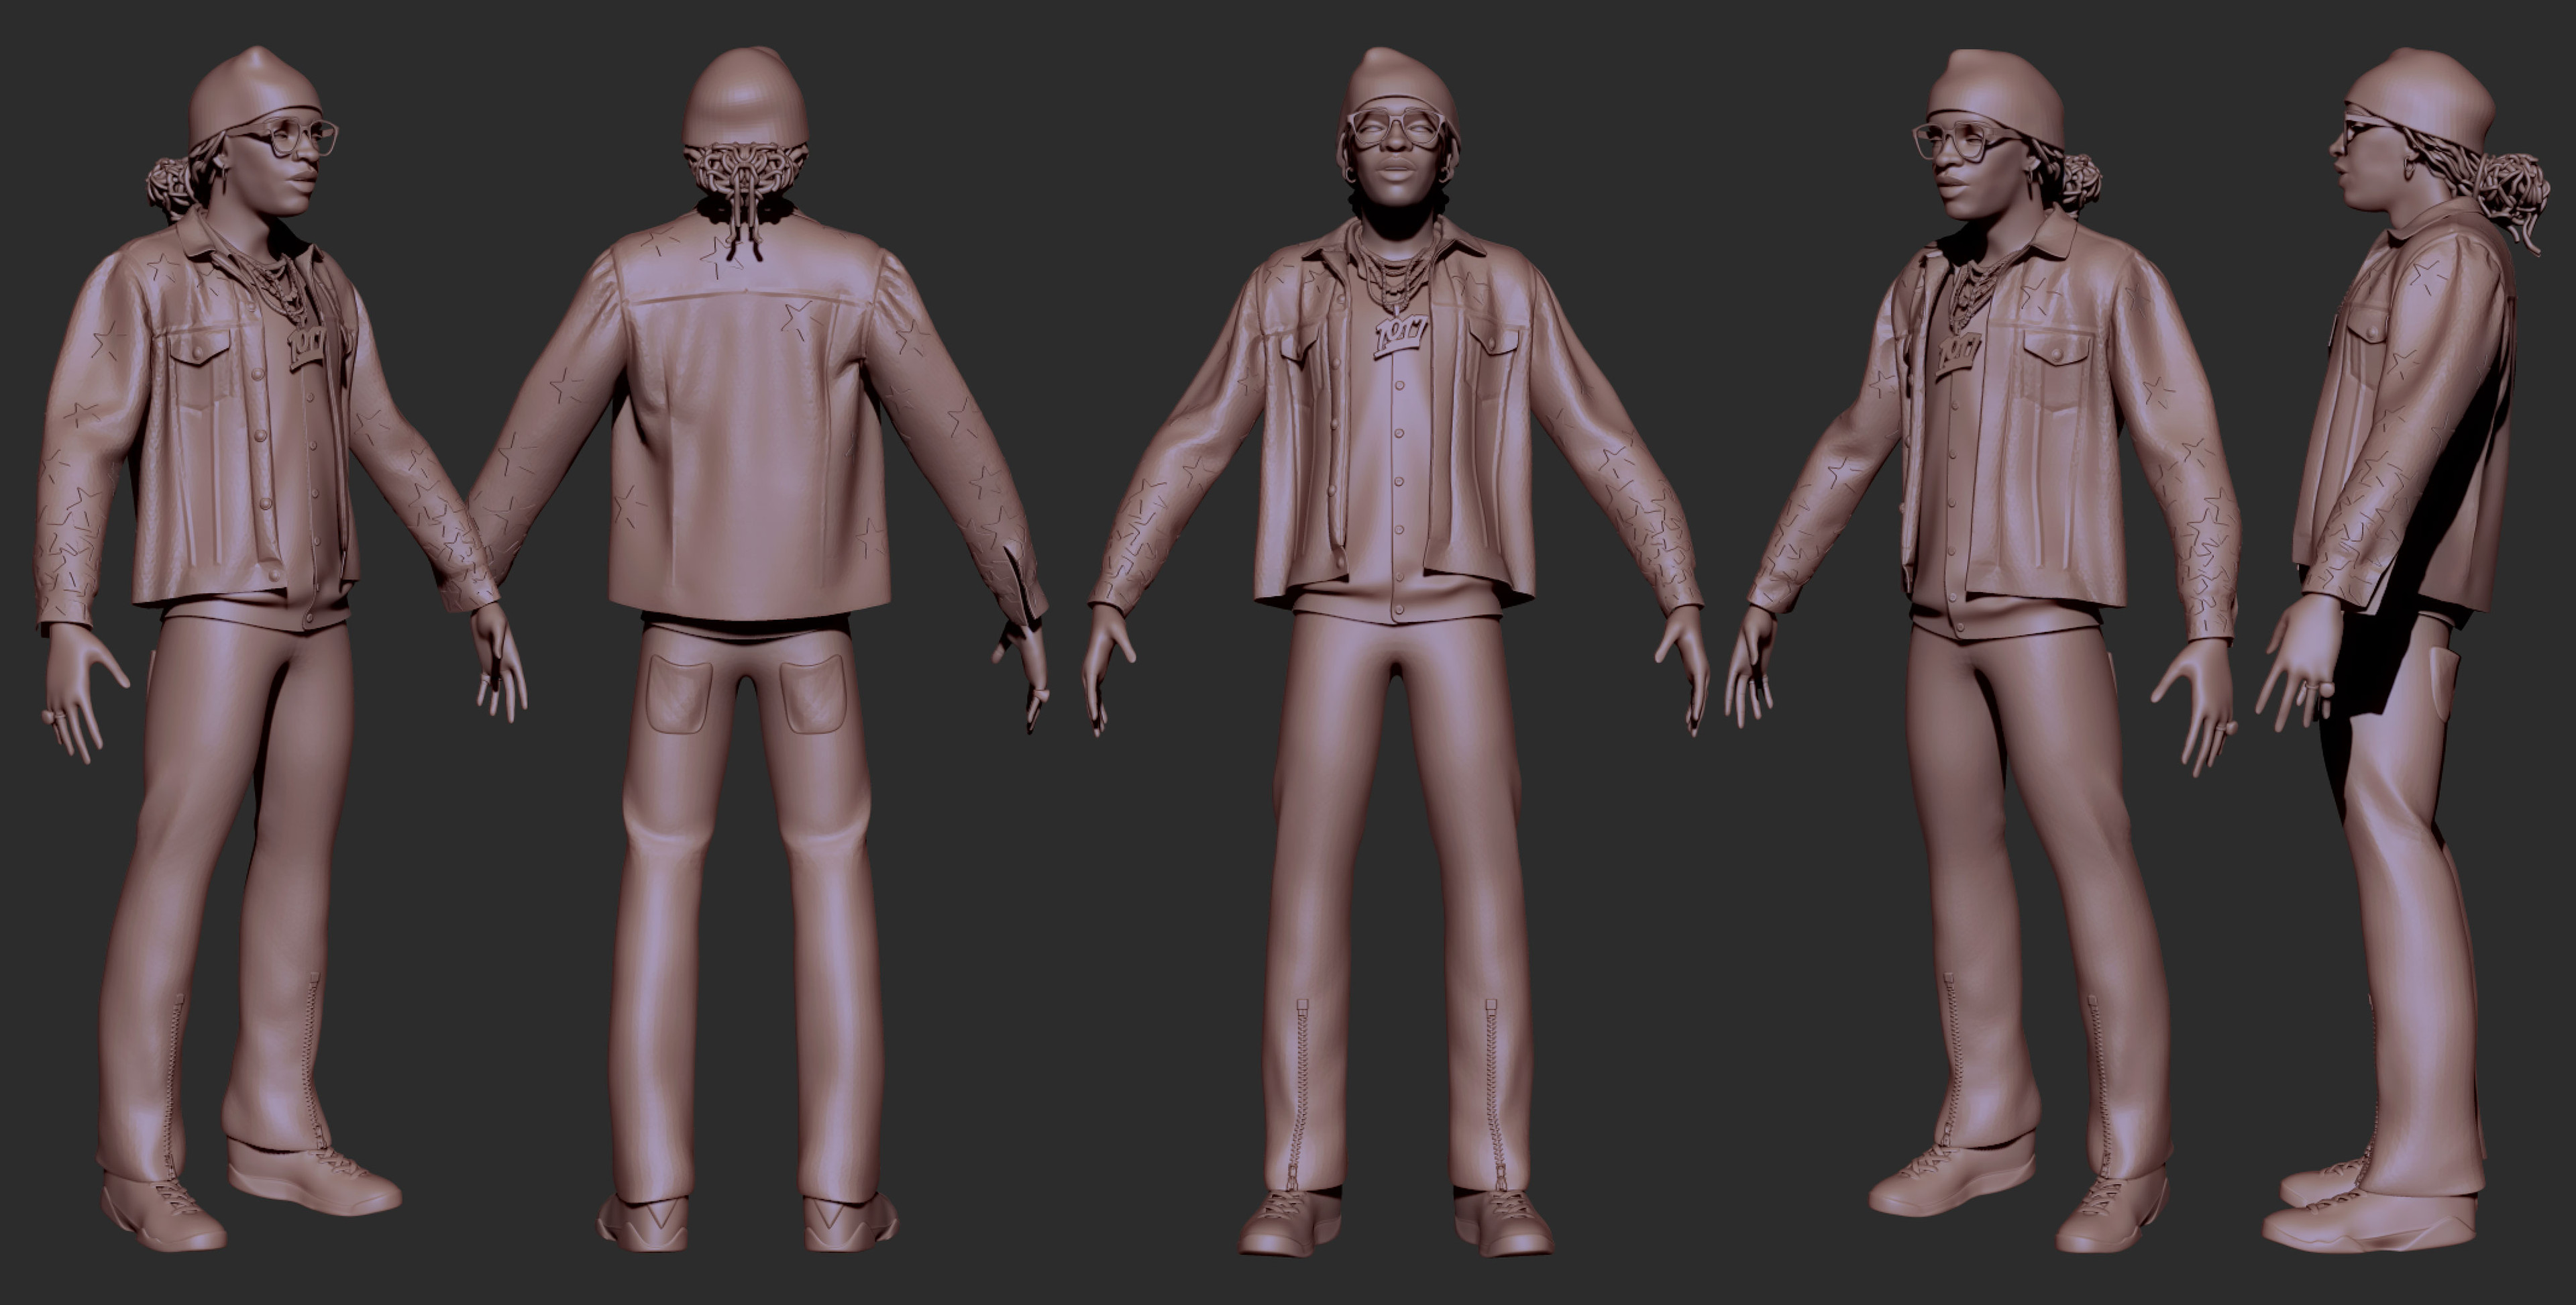 Young Thug - Sculpt (wip)